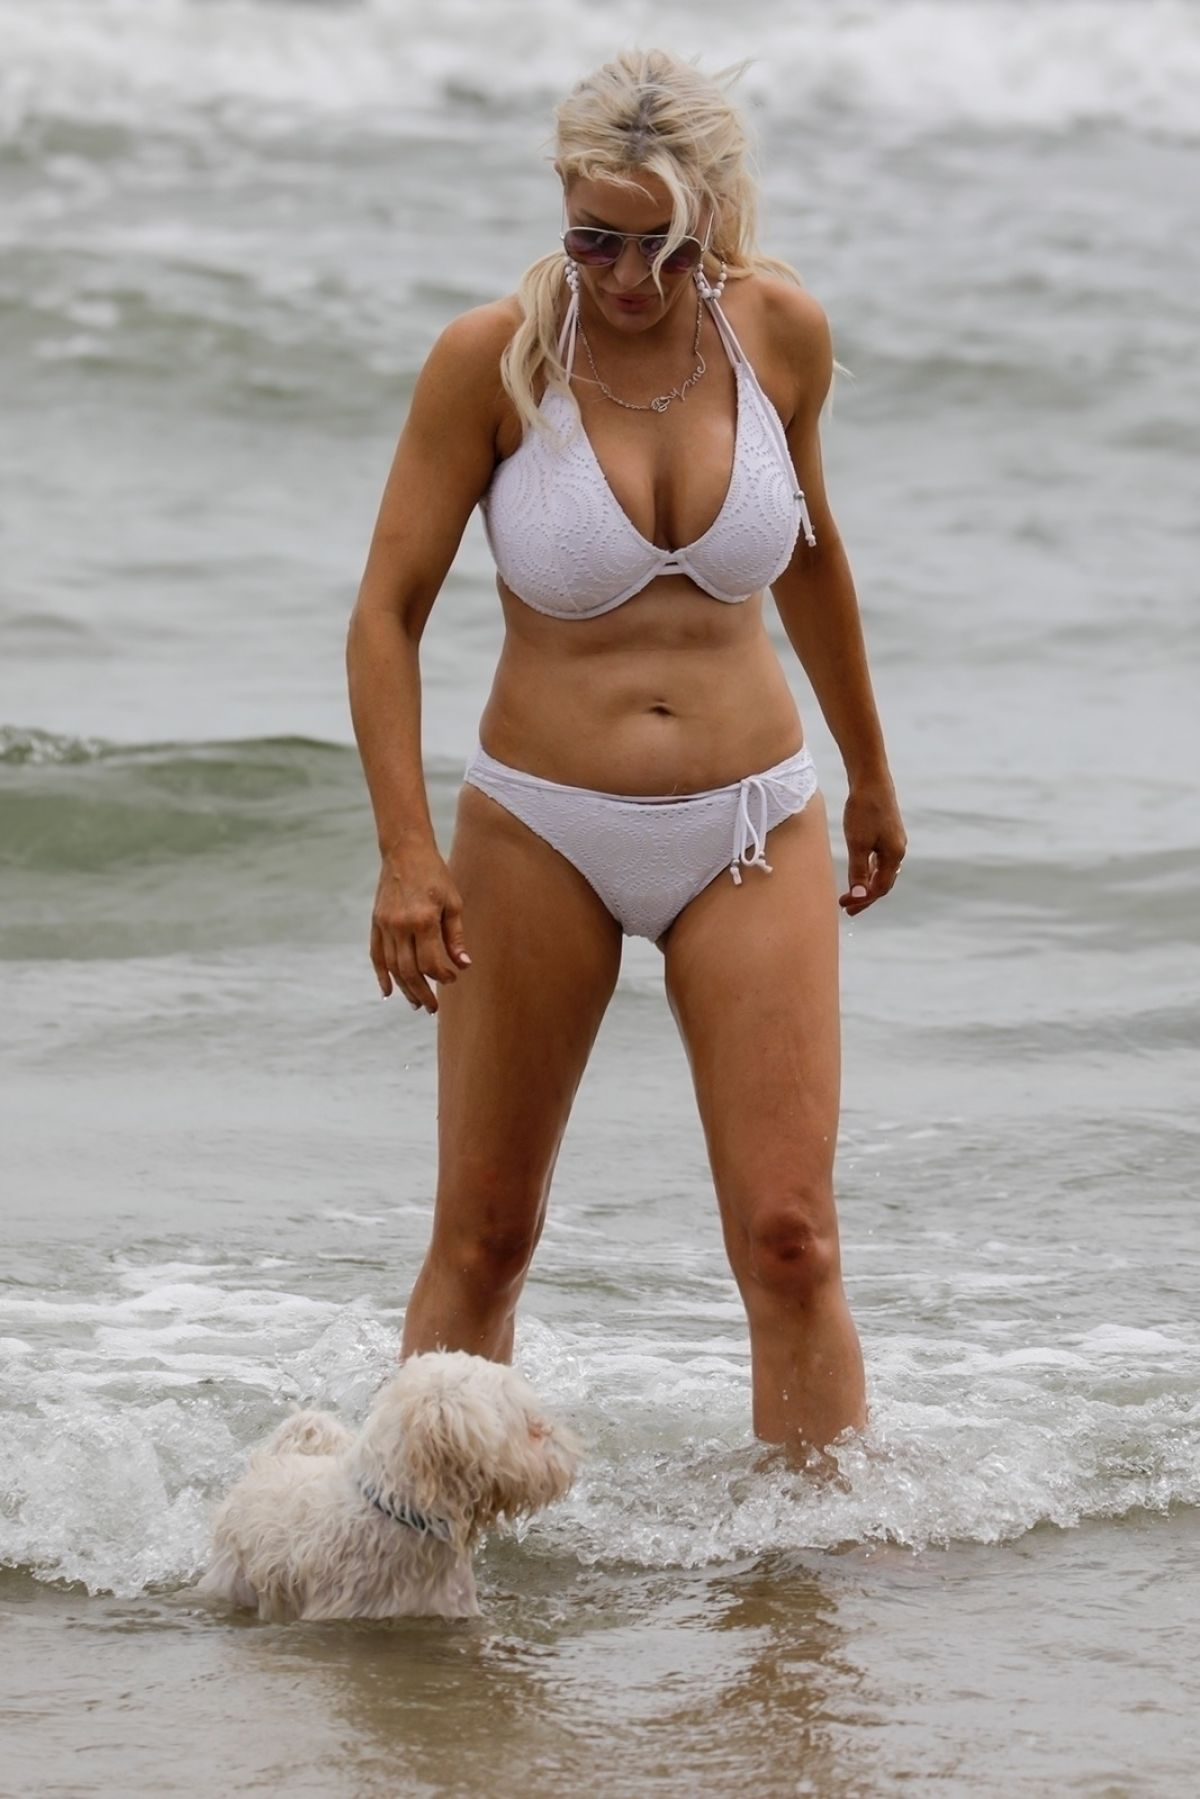 Brynne Edelsten in White Bikini at St Kilda Beach in Melbourne Pic 8 of 35